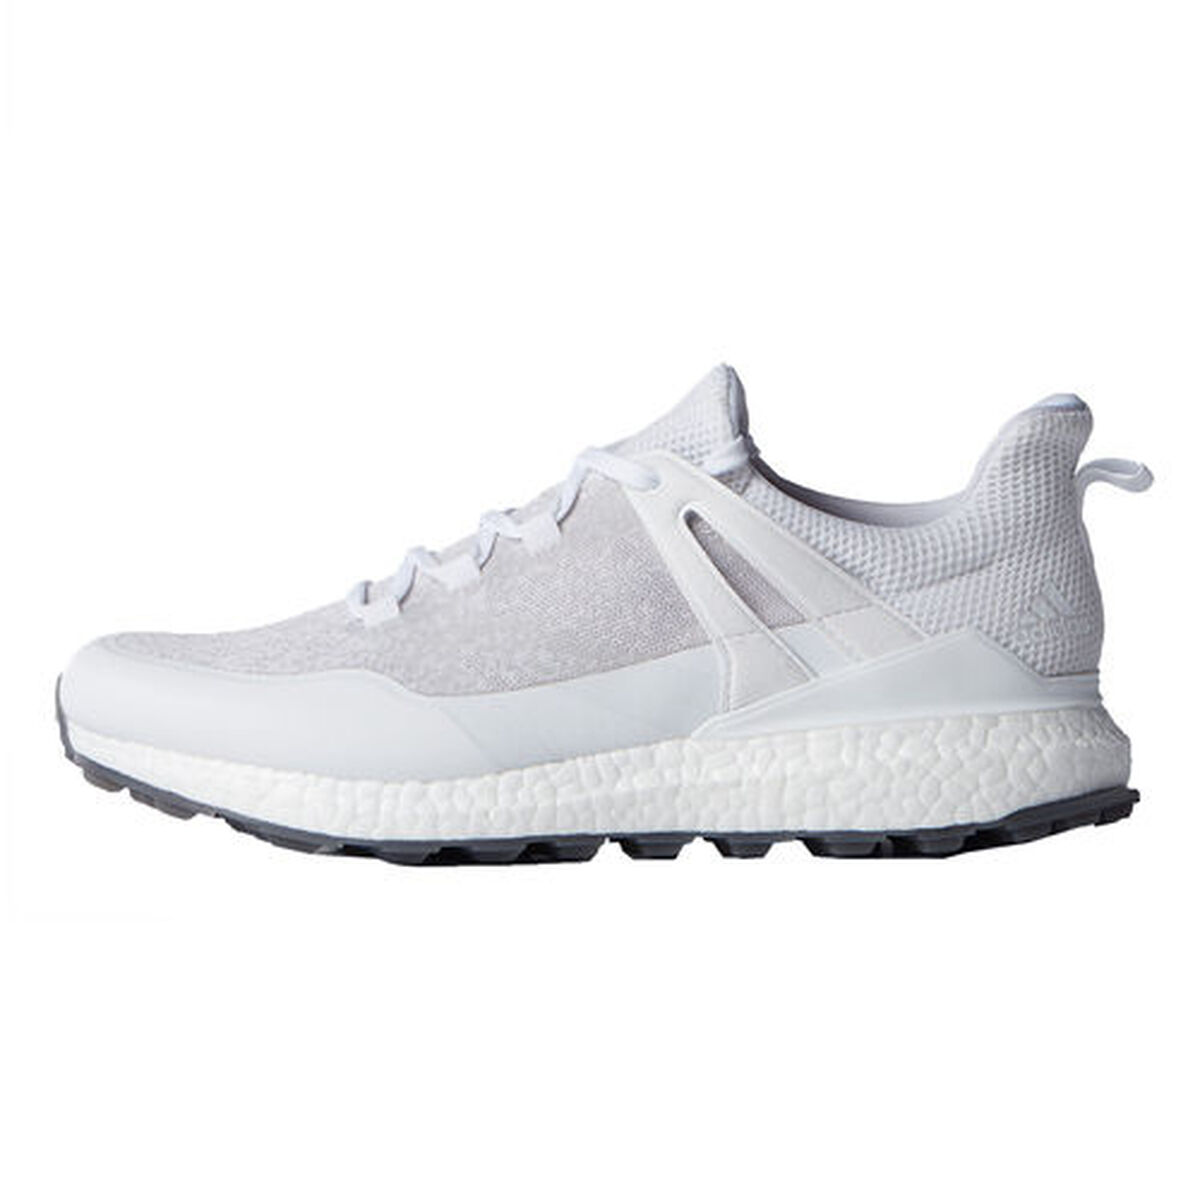 low priced 11cad 71c8b Images. adidas Crossknit Boost Men39s Golf Shoe ...